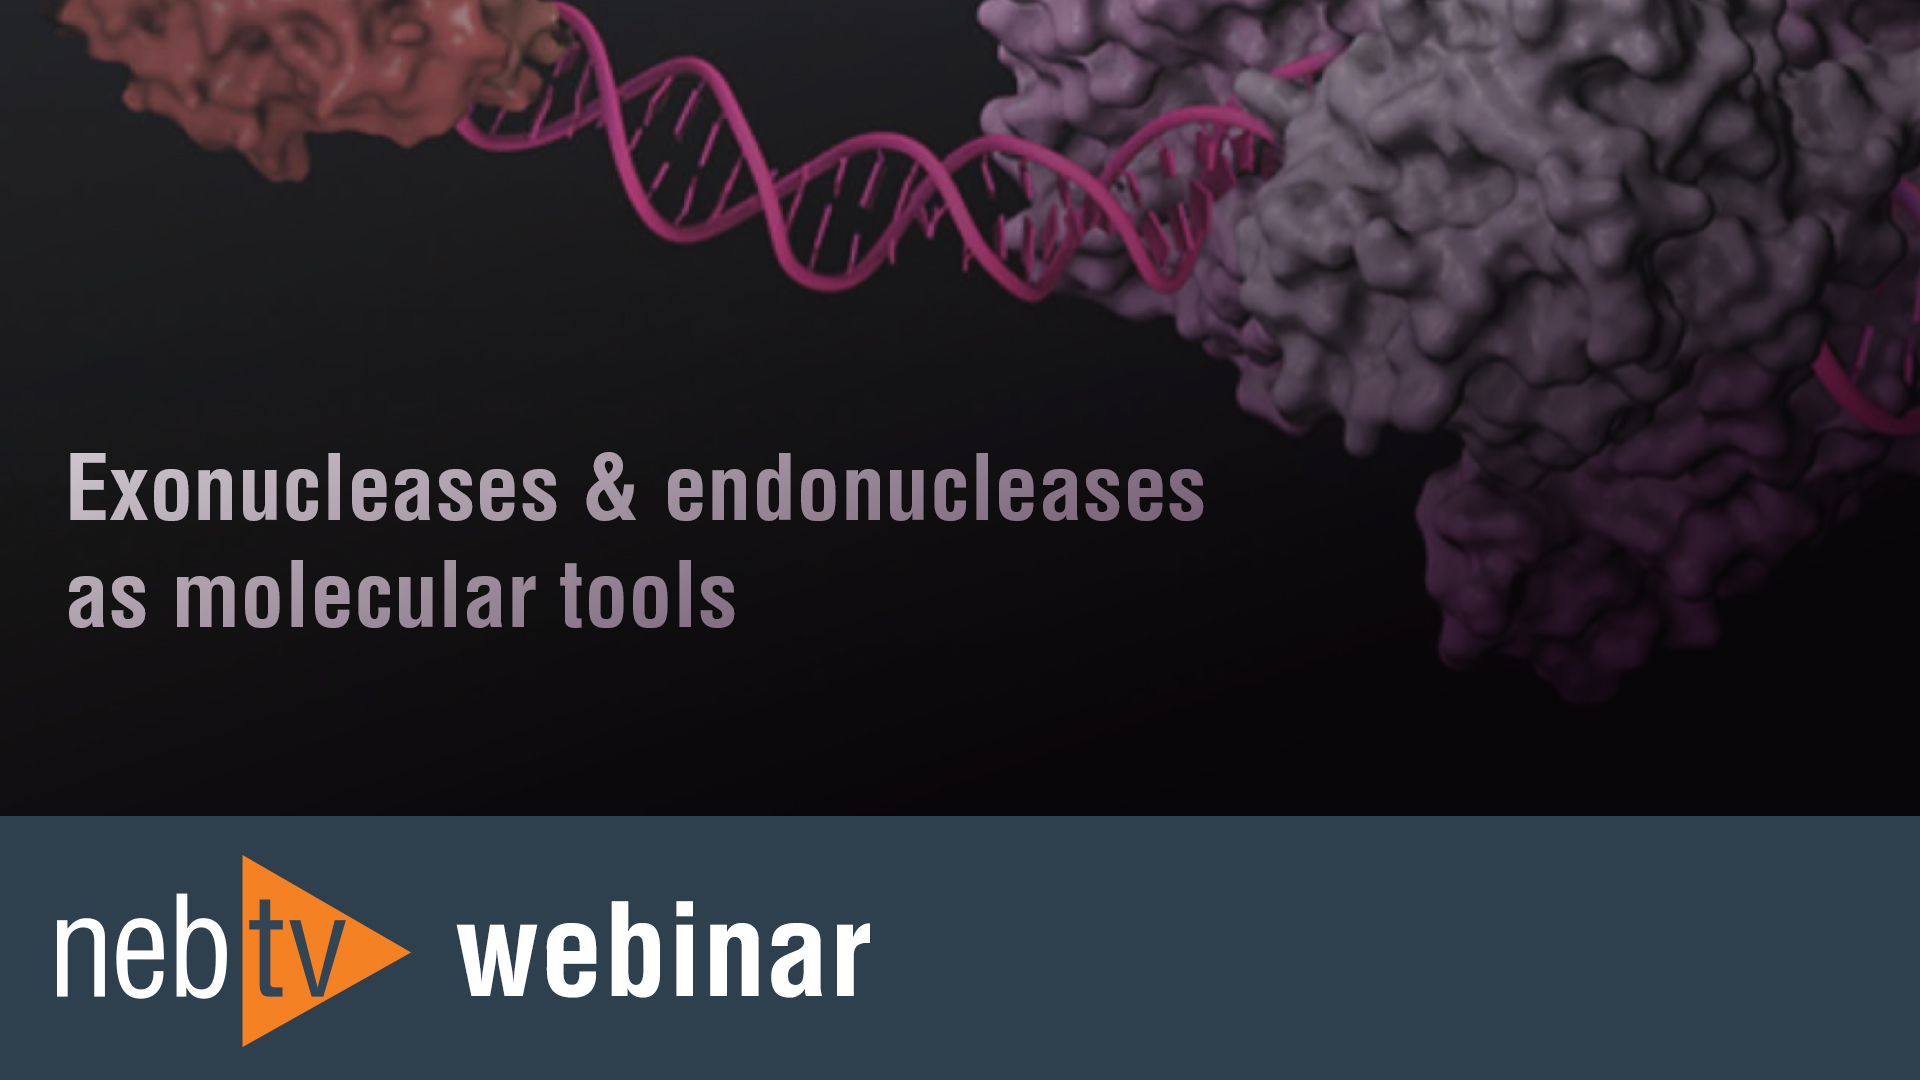 NEBTV_Webinar_Exonucleases_endonucleases-as-molecular-tools_1920